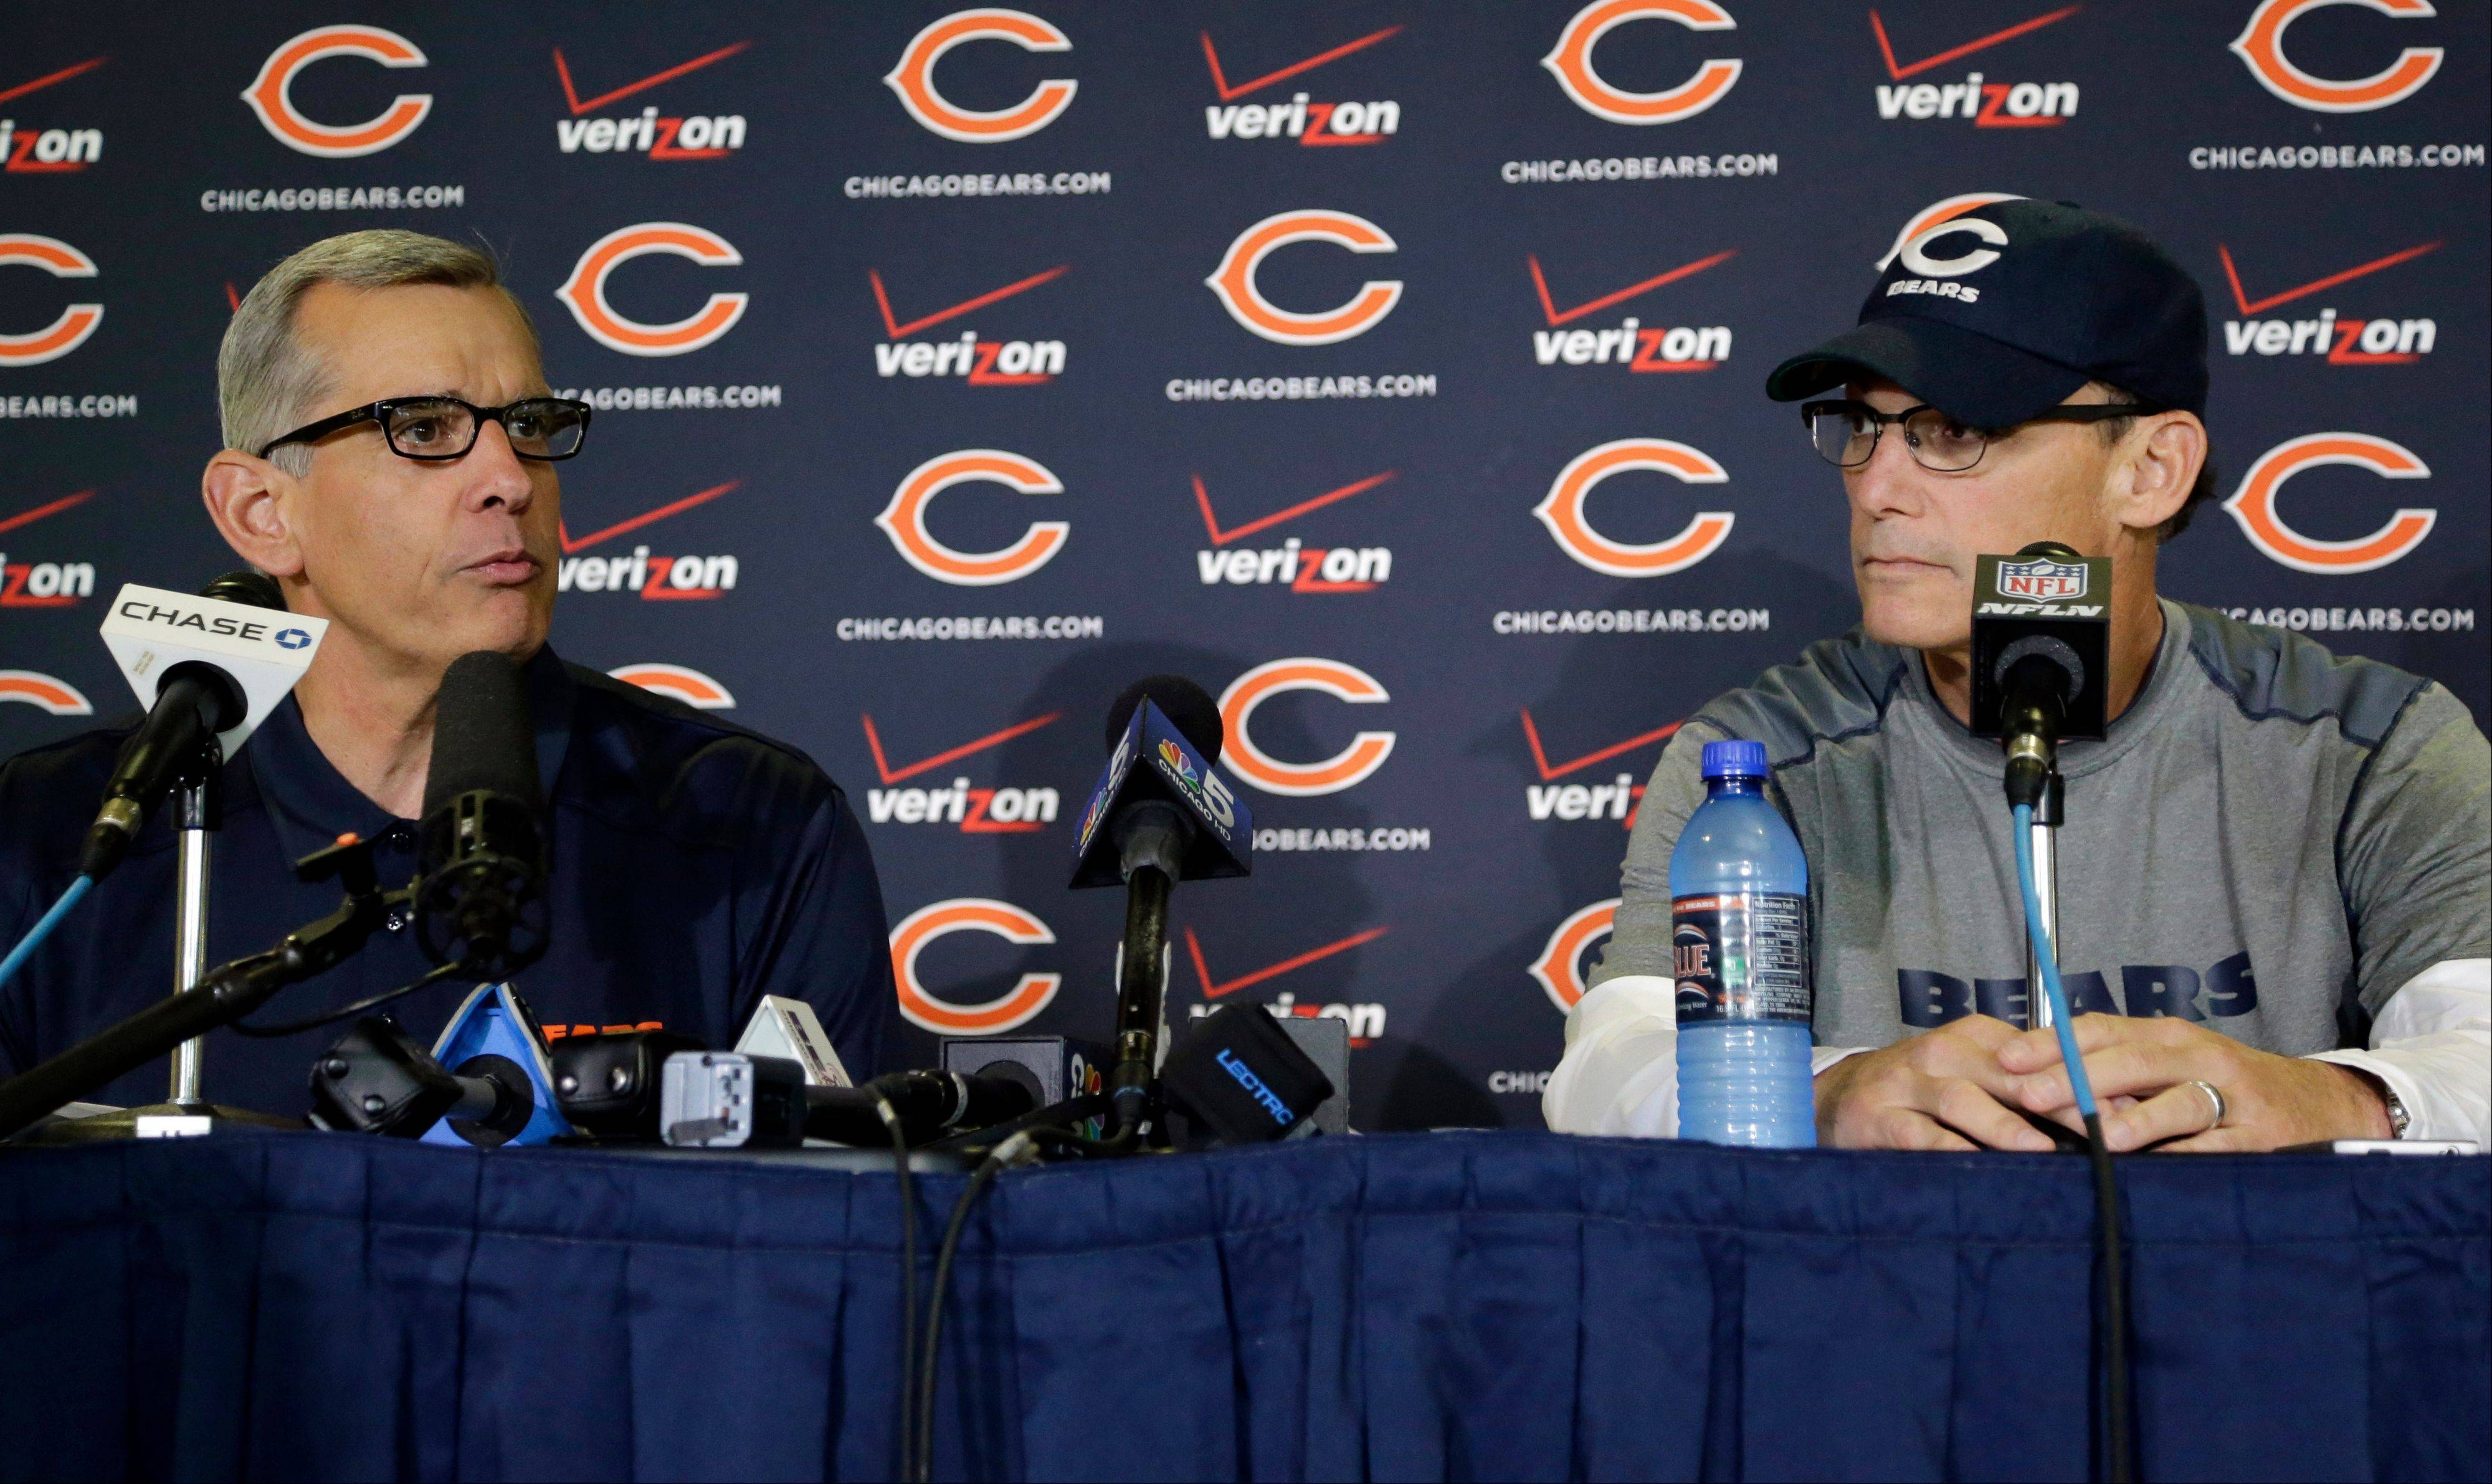 Chicago Bears general manager Phil Emery, left, and coach Marc Trestman listen to questions during an NFL football news conference on Wednesday, July 24, 2013, in Bourbonnais, Ill. (AP Photo/Nam Y. Huh)